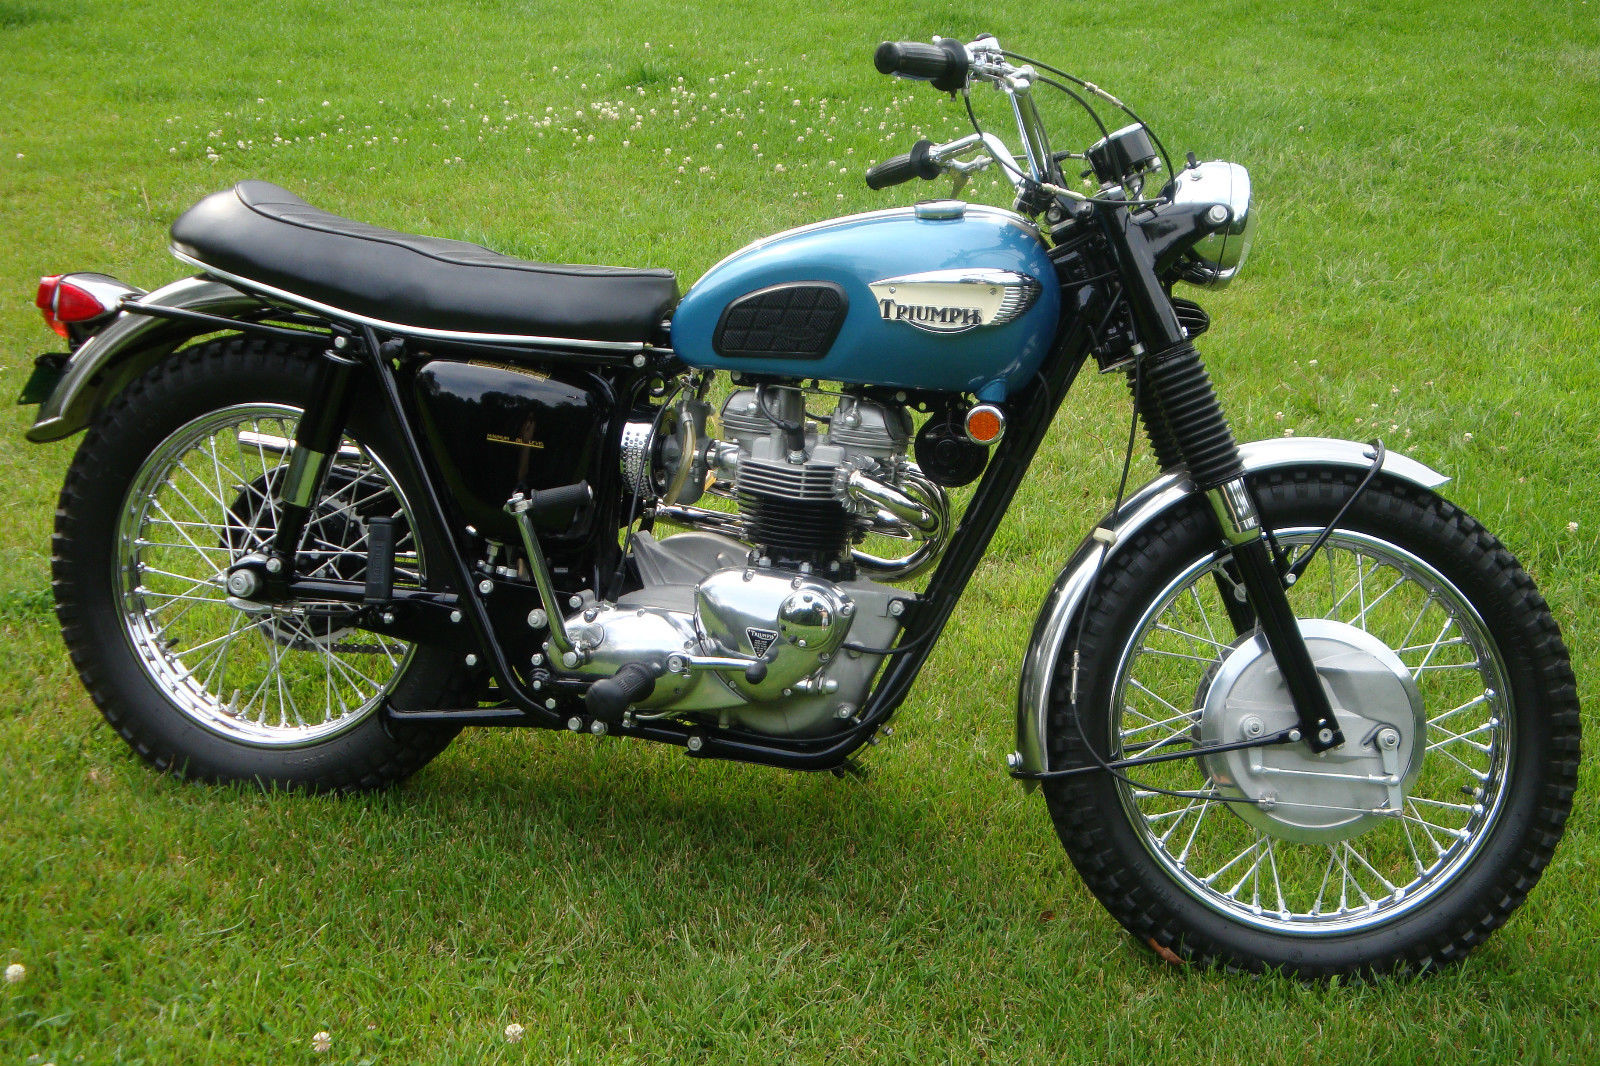 triumph trophy tr6c - 1968 - restored classic motorcycles at bikes